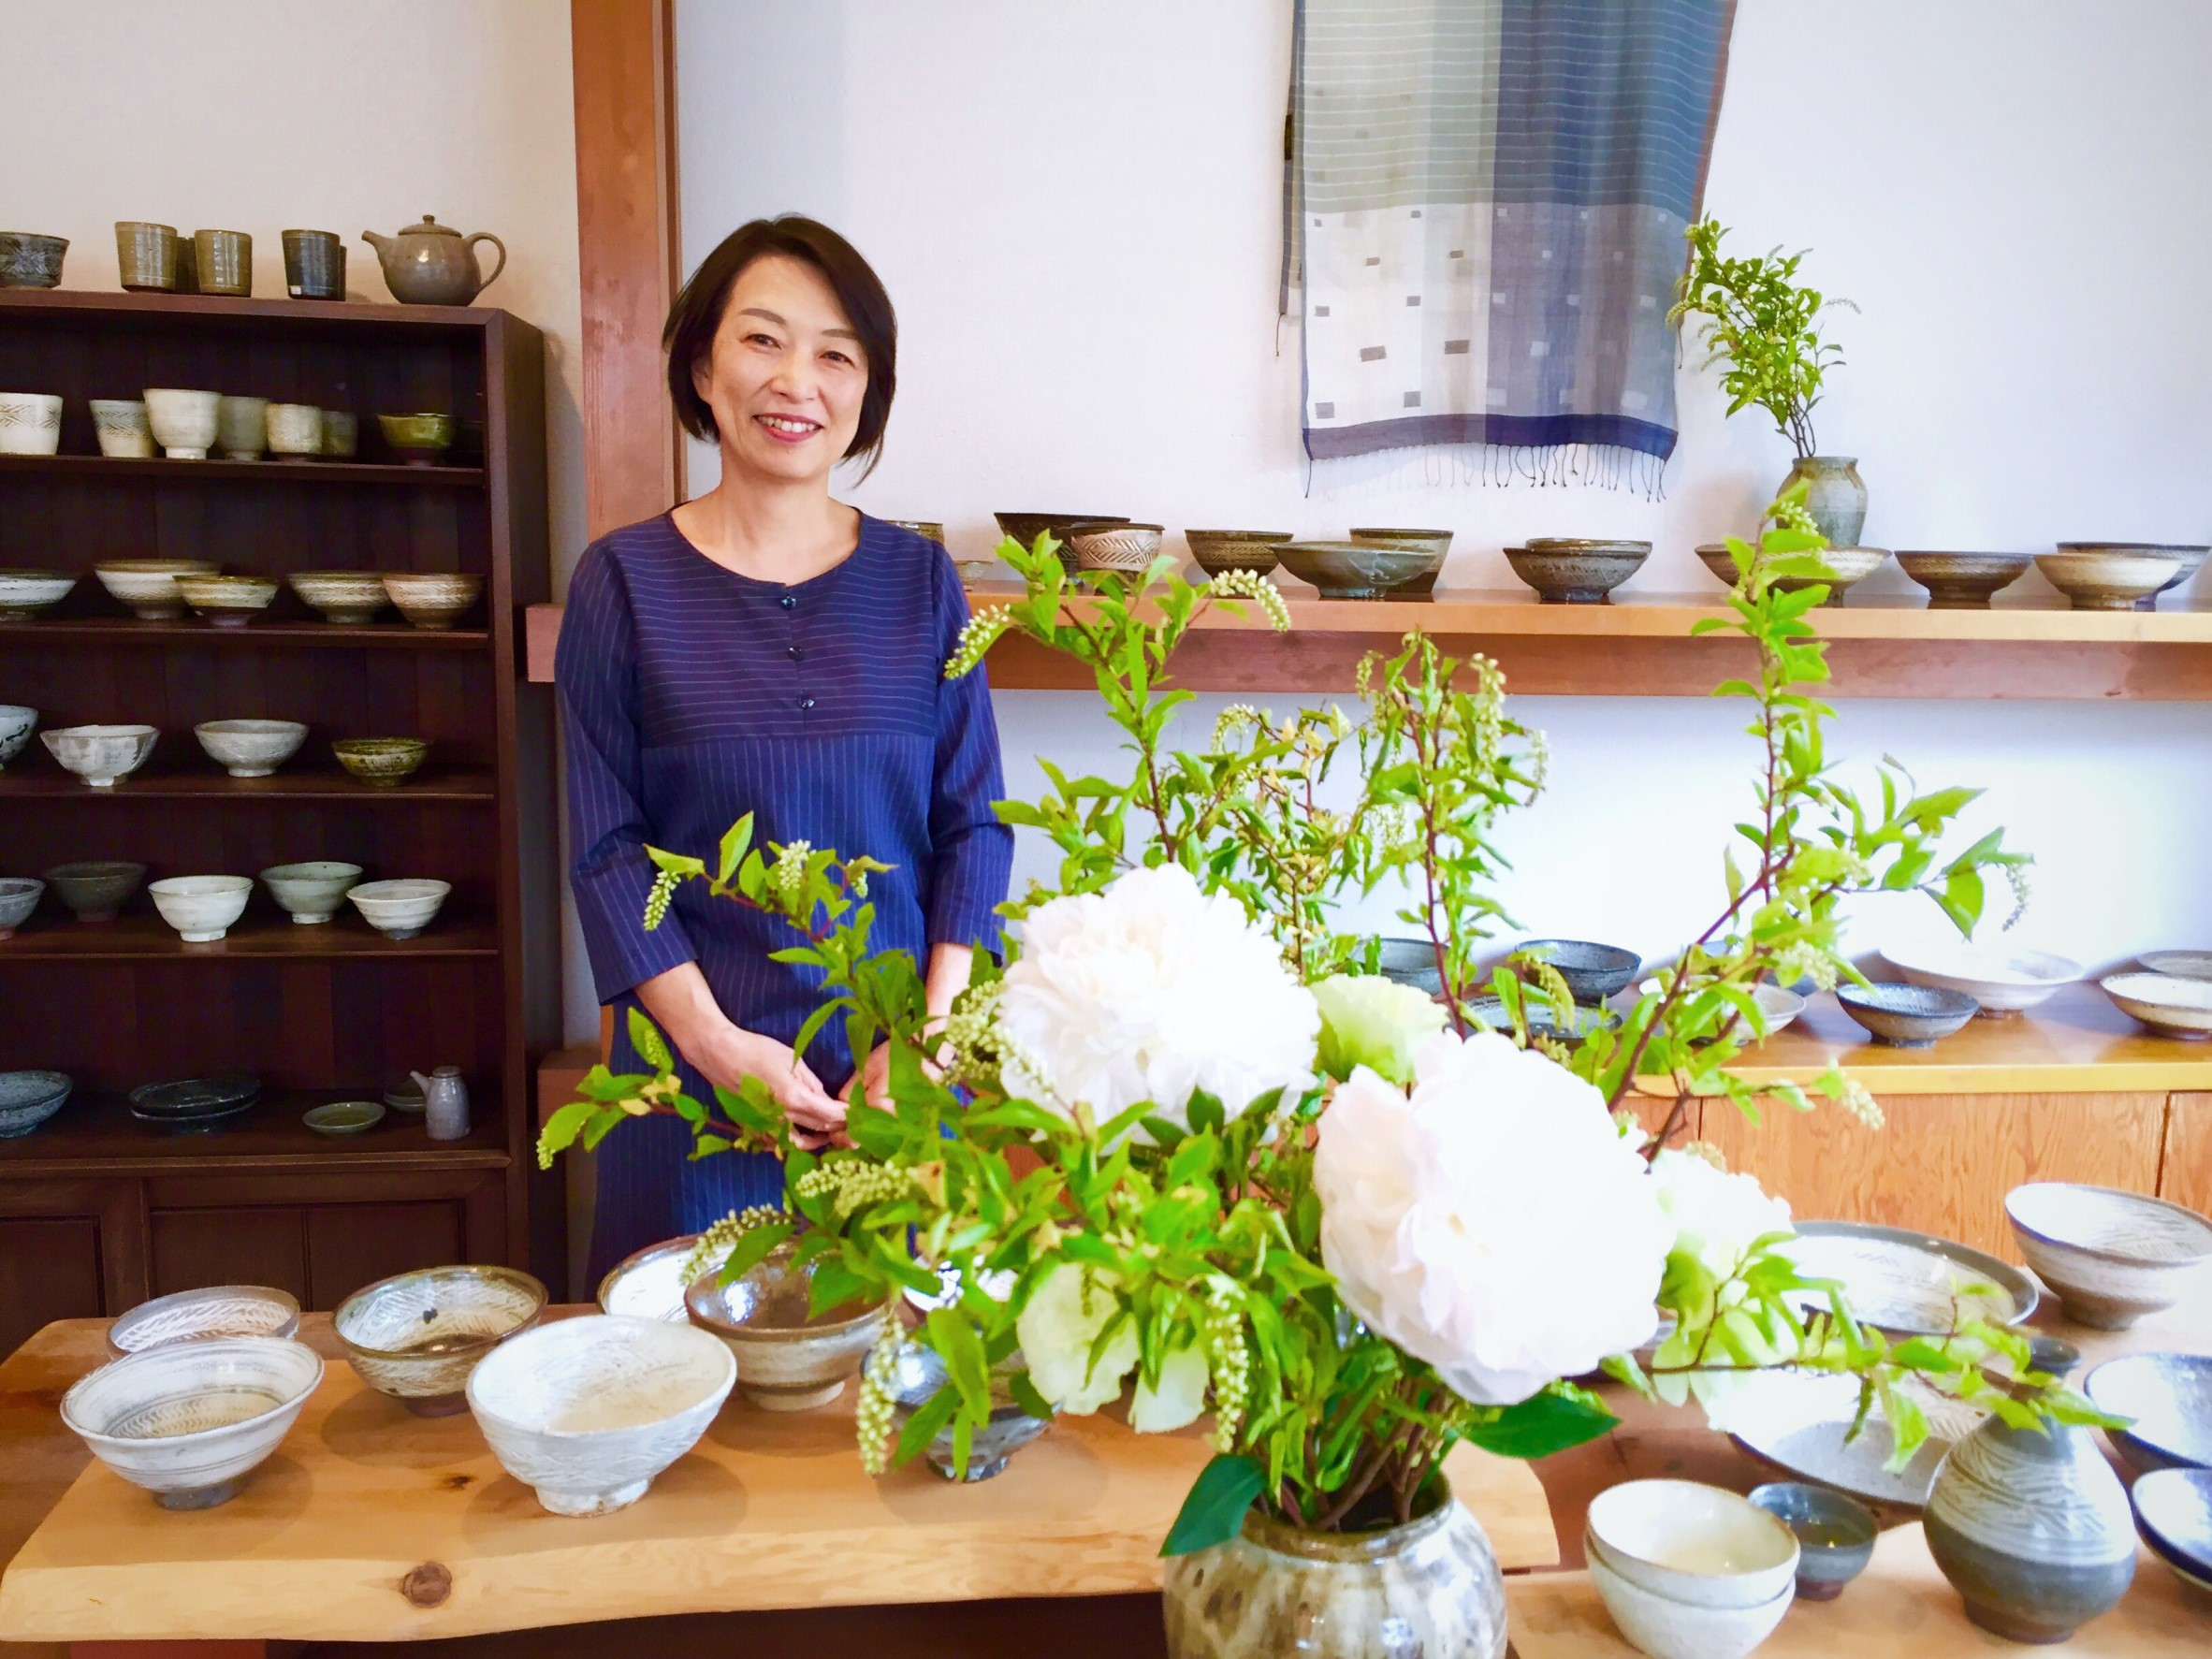 Ms. Mari Kawasaki is a food stylist who arranges the tables with pottery and accessories so that dishes look more attractive in magazines or recipe books